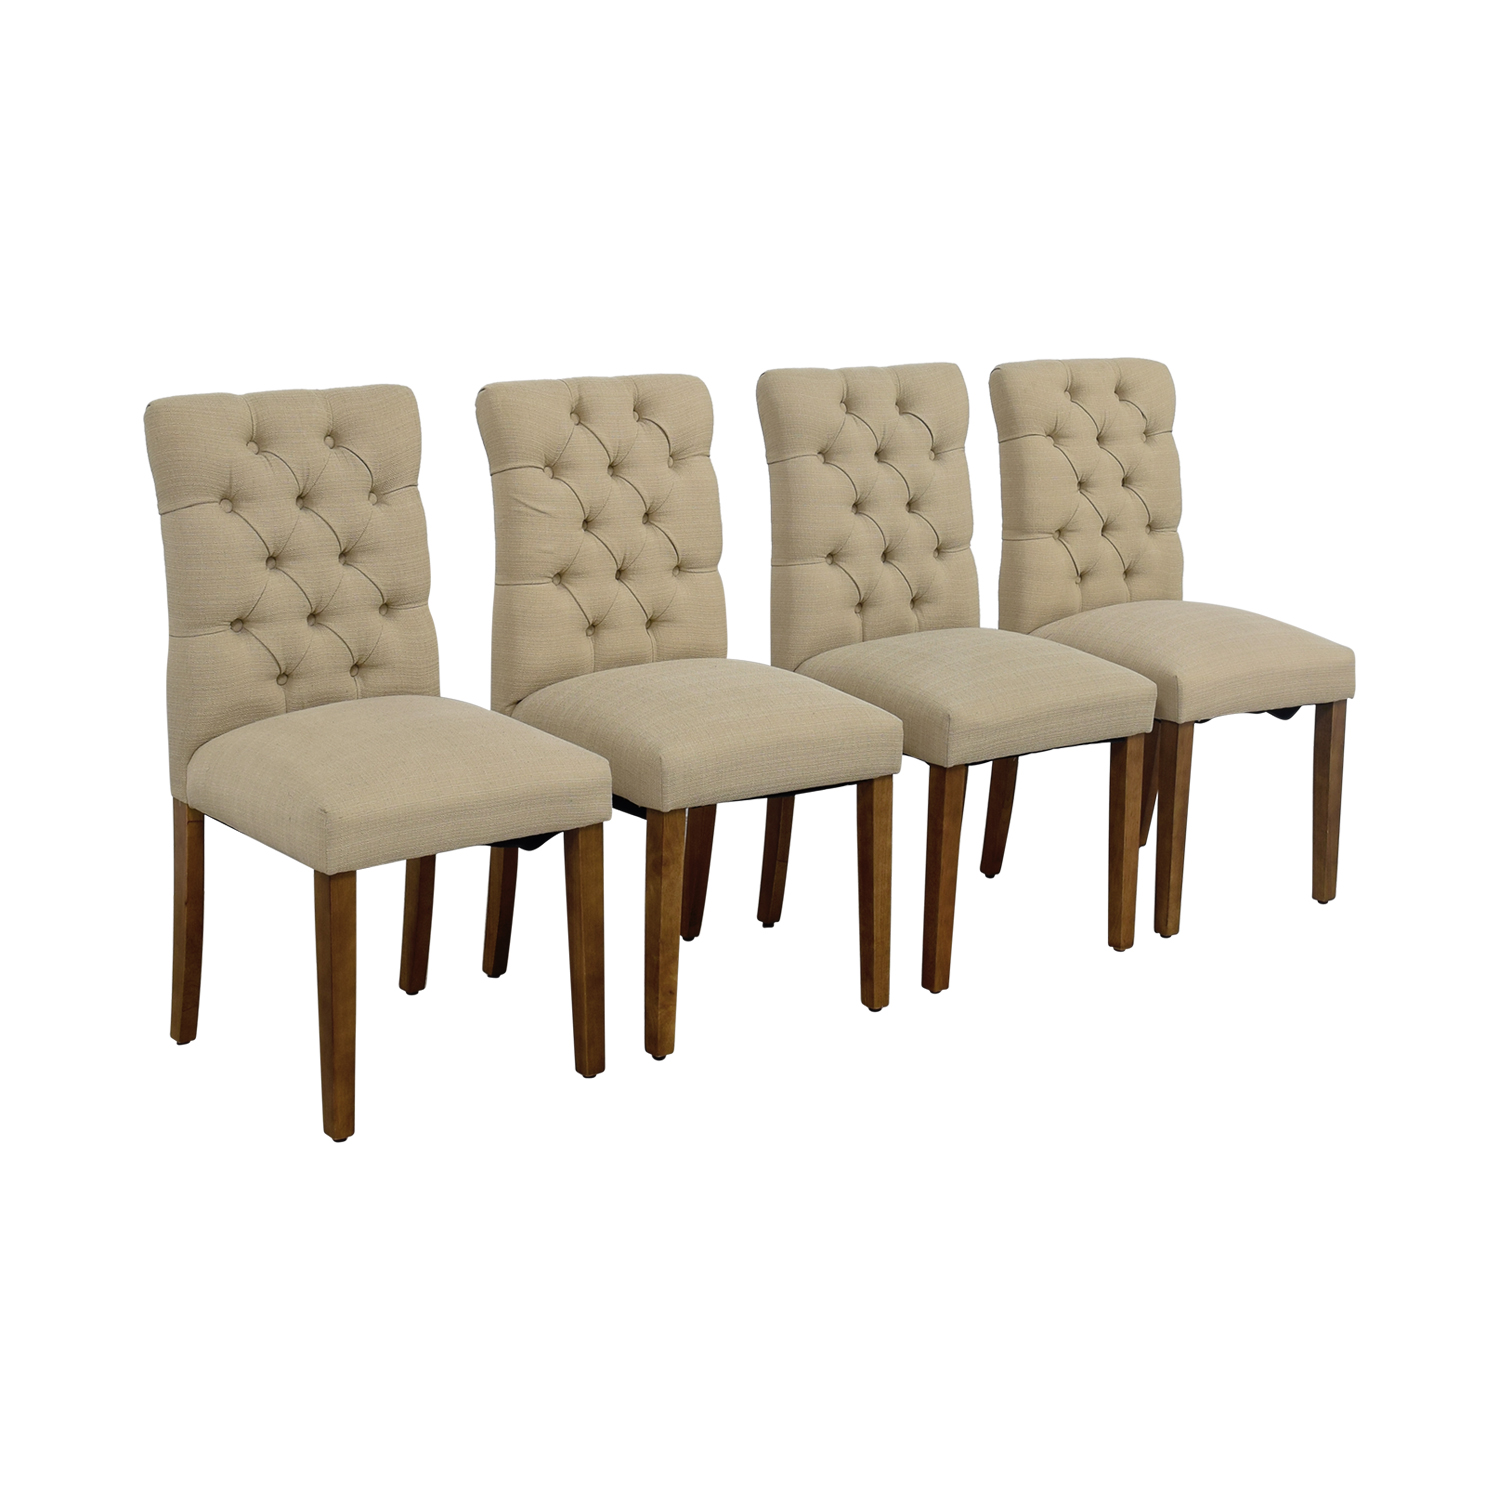 ... Target Target Brookline Threshold Tan Tufted Dining Chairs Price ...